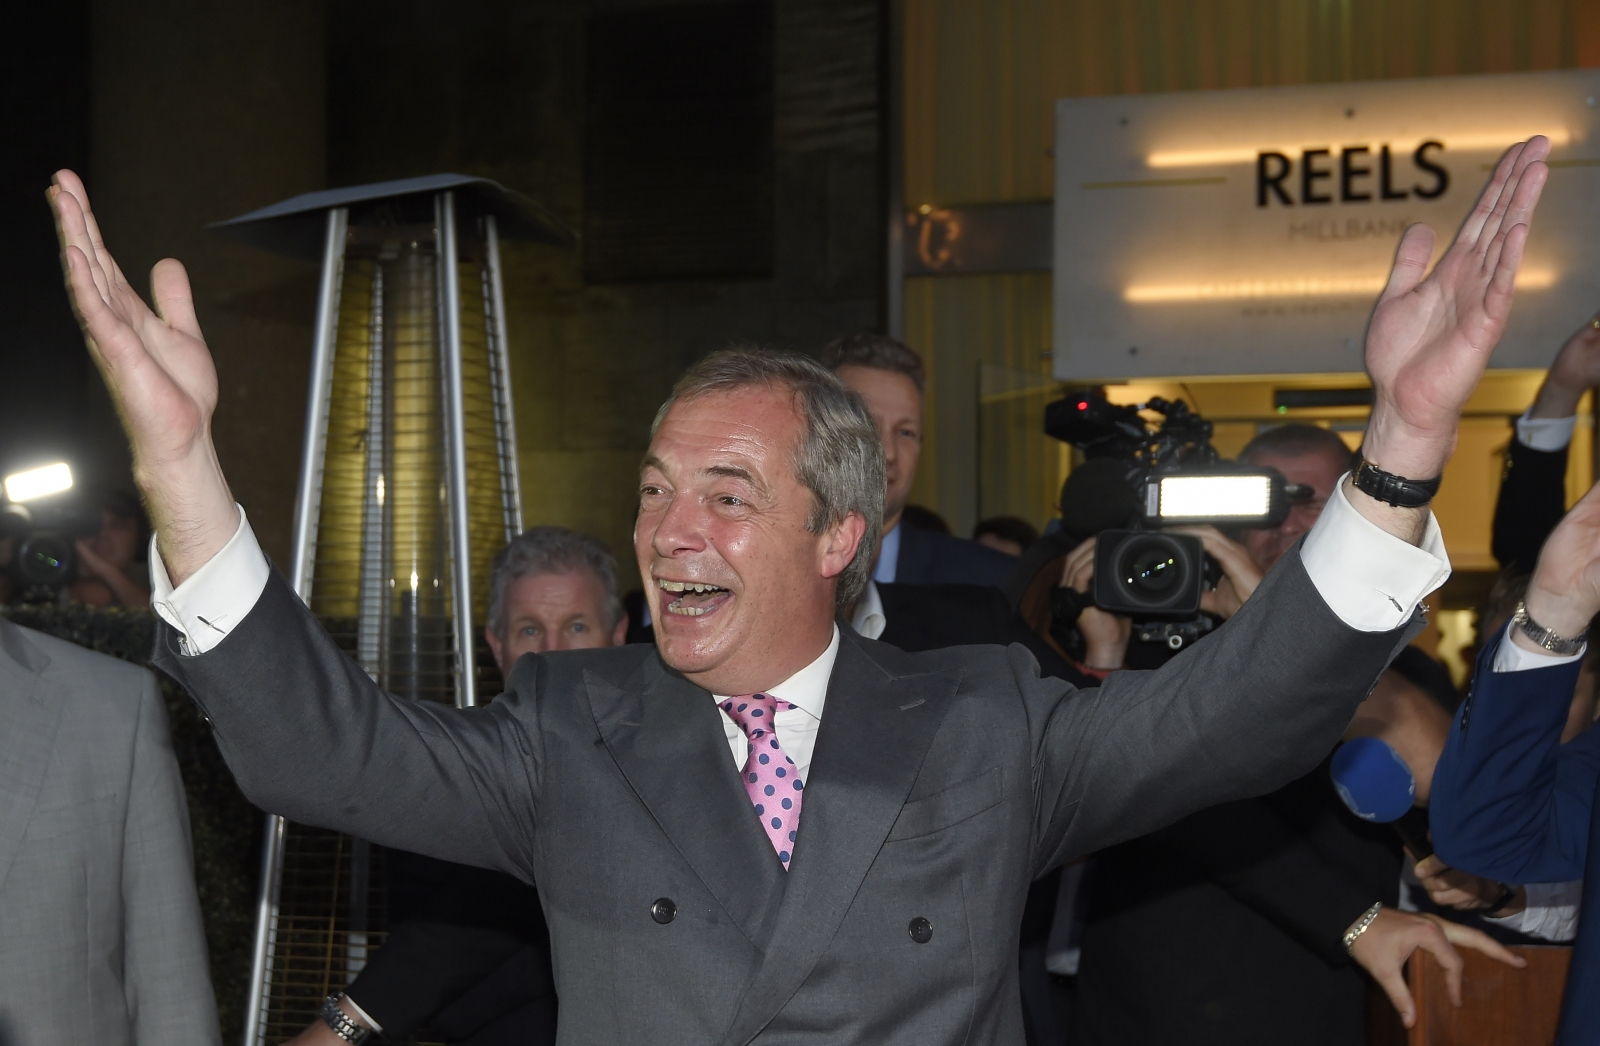 Nigel Farage EU referendum